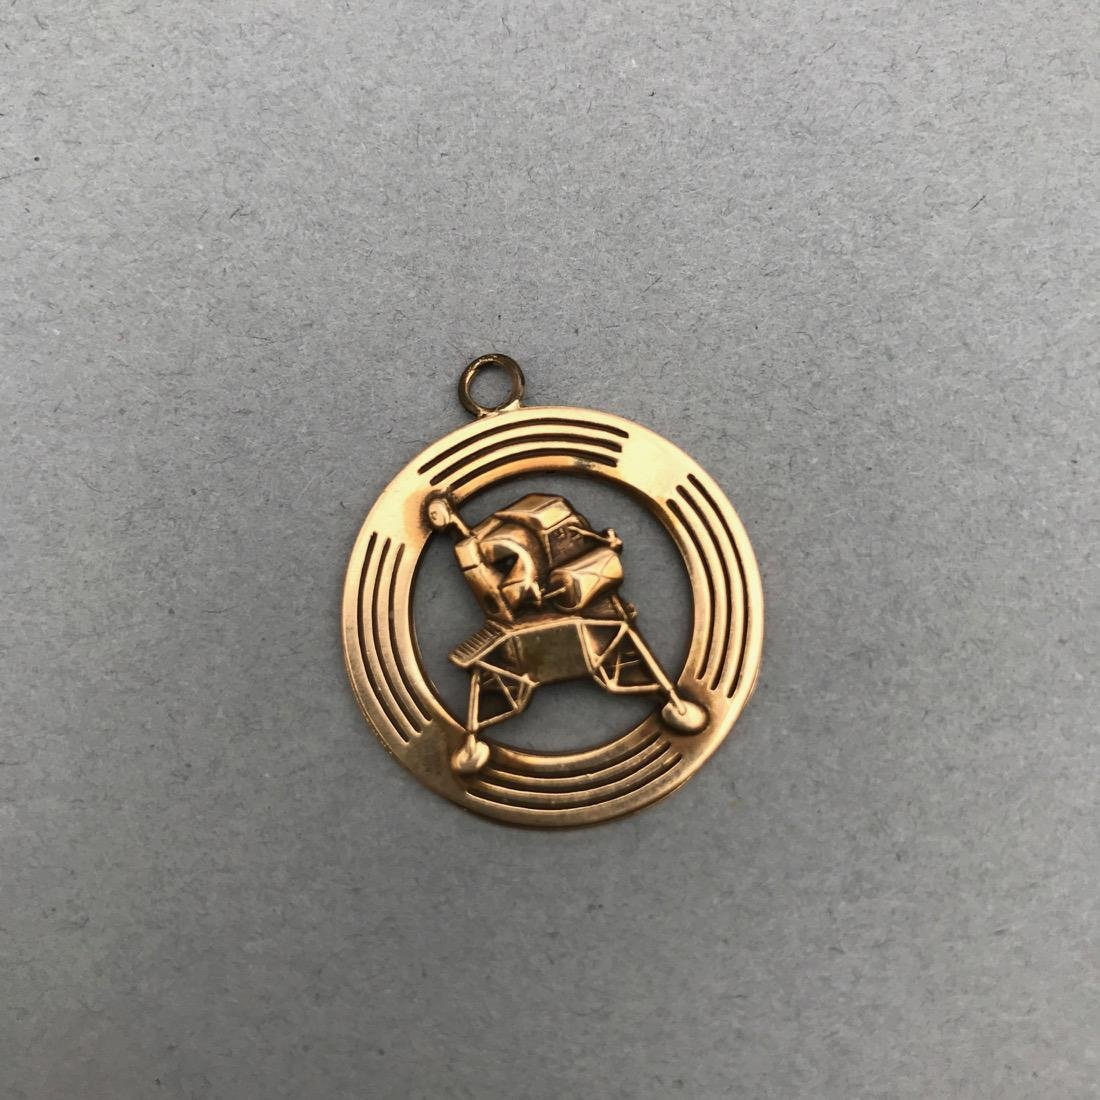 3 14K Gold Charms - 3